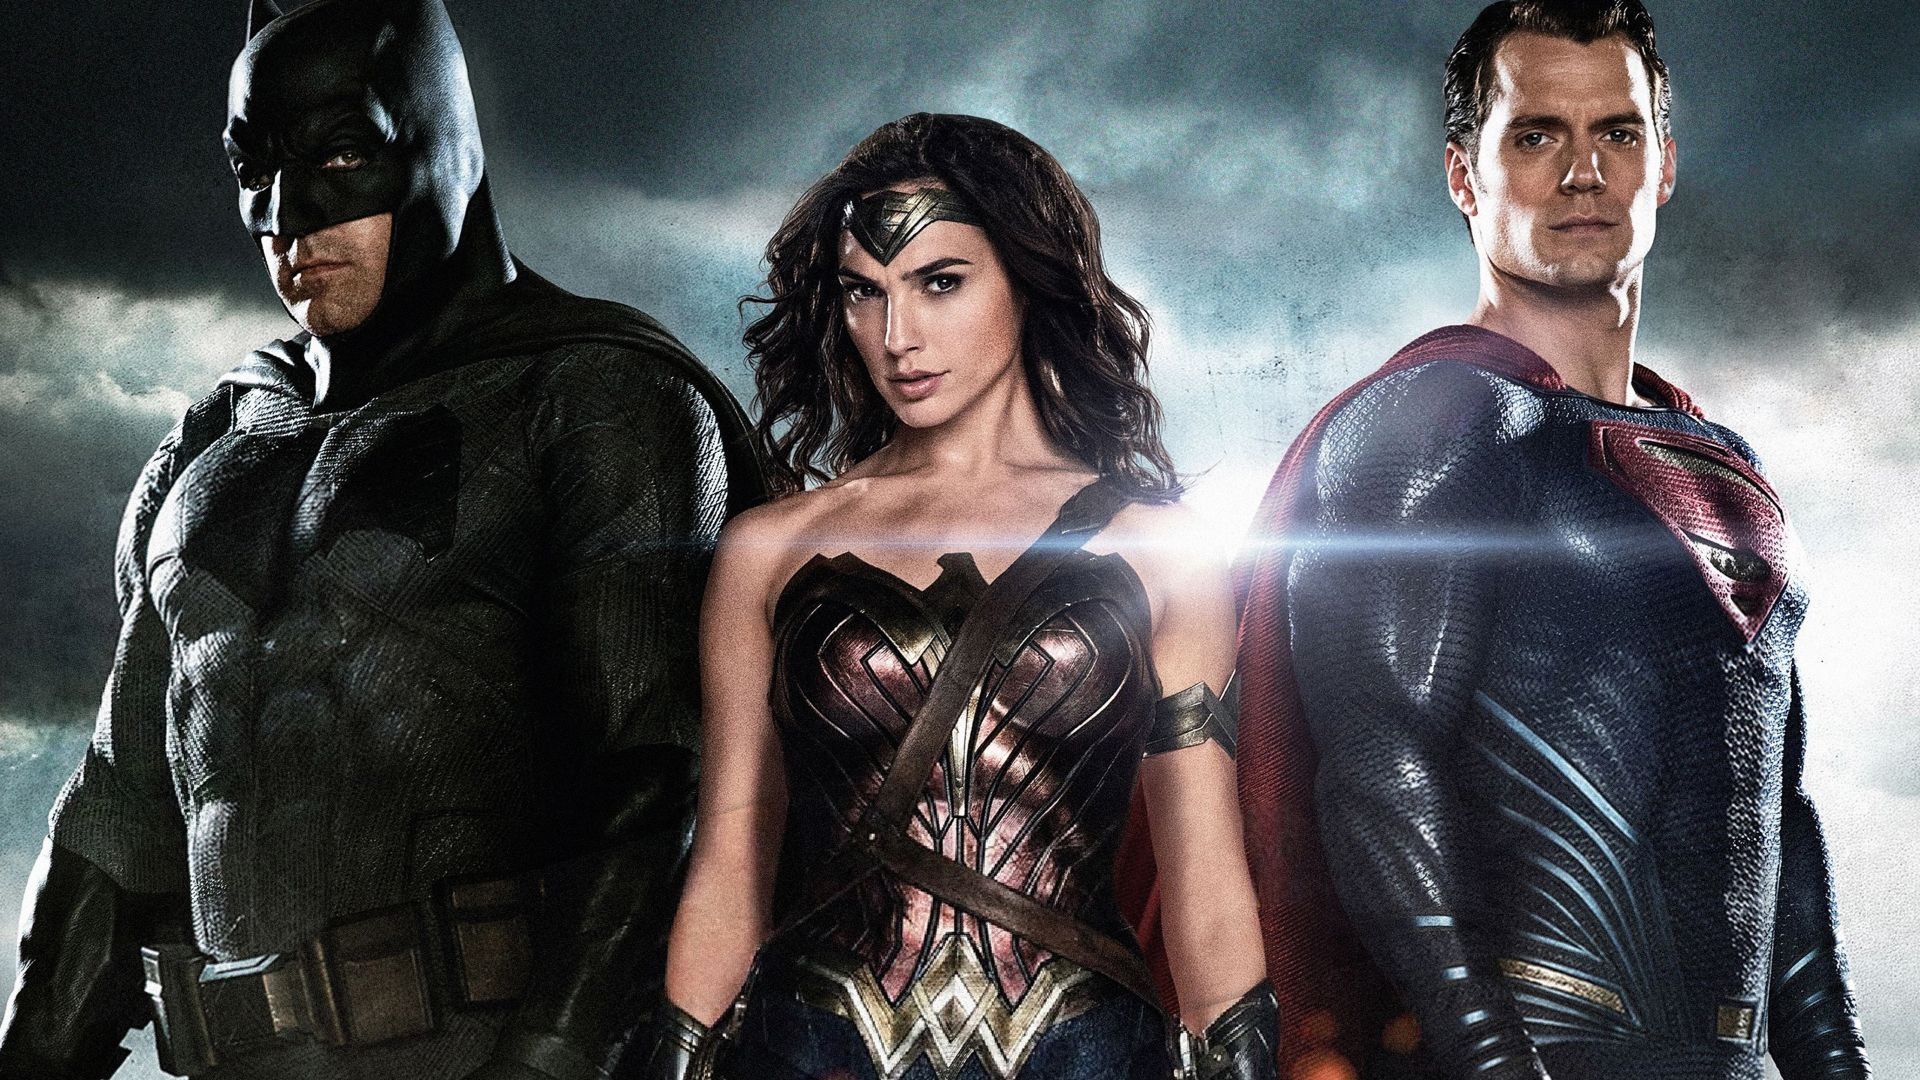 Batman v Superman: Dawn of Justice, Henry Cavill, Ben Affleck, Gal Gadot, Best Movies, movie (horizontal)